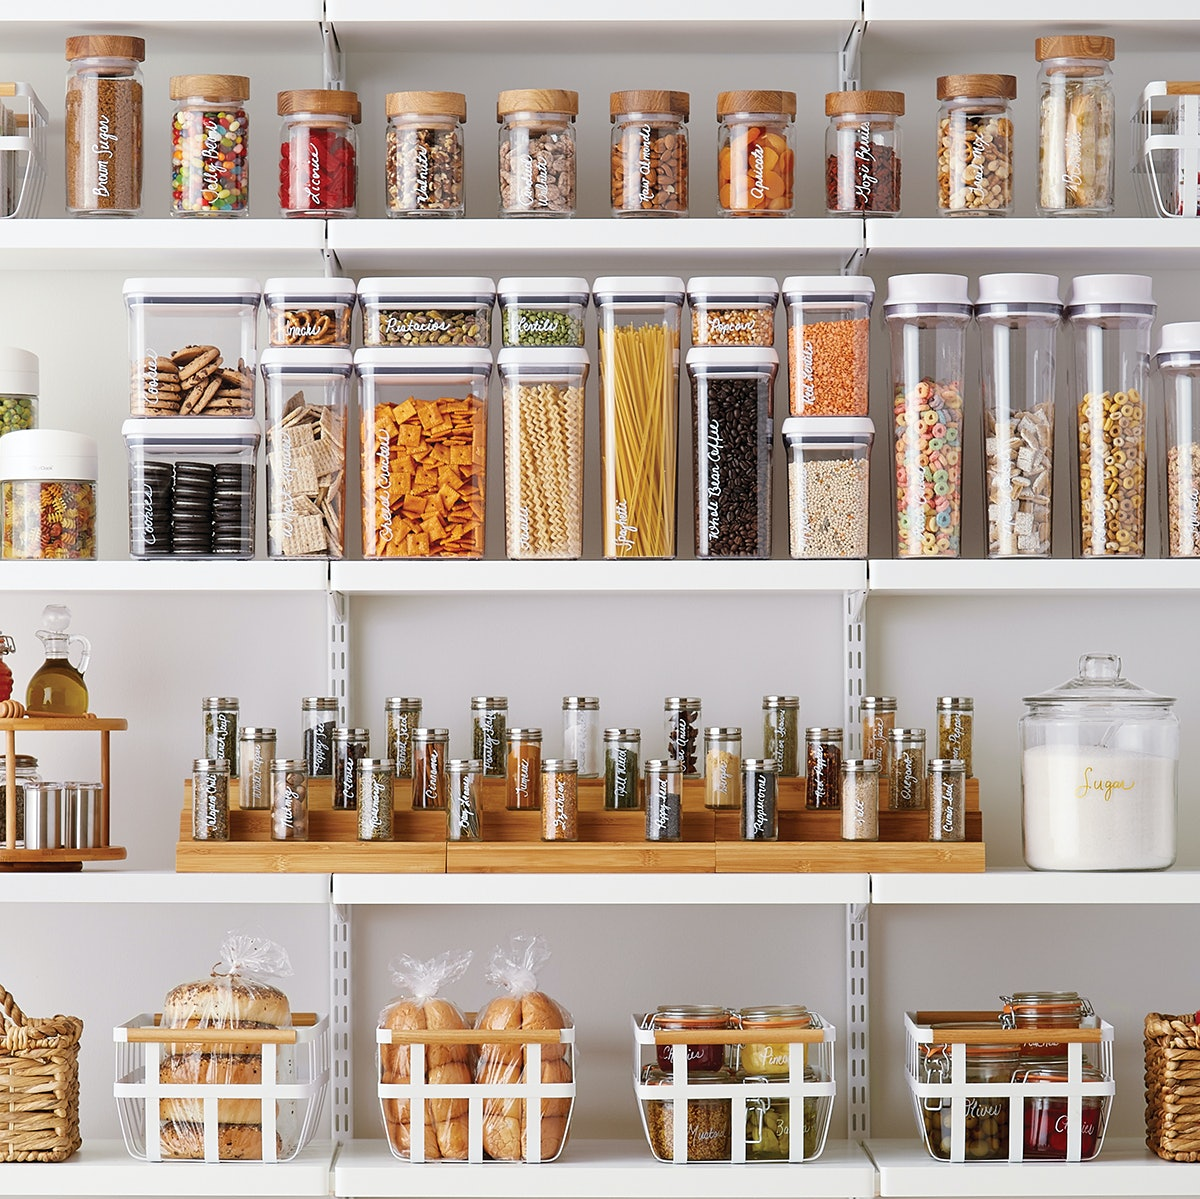 Kitchen Organizer Storage The Container Store S Kitchen Organization Sale Means 25 Percent